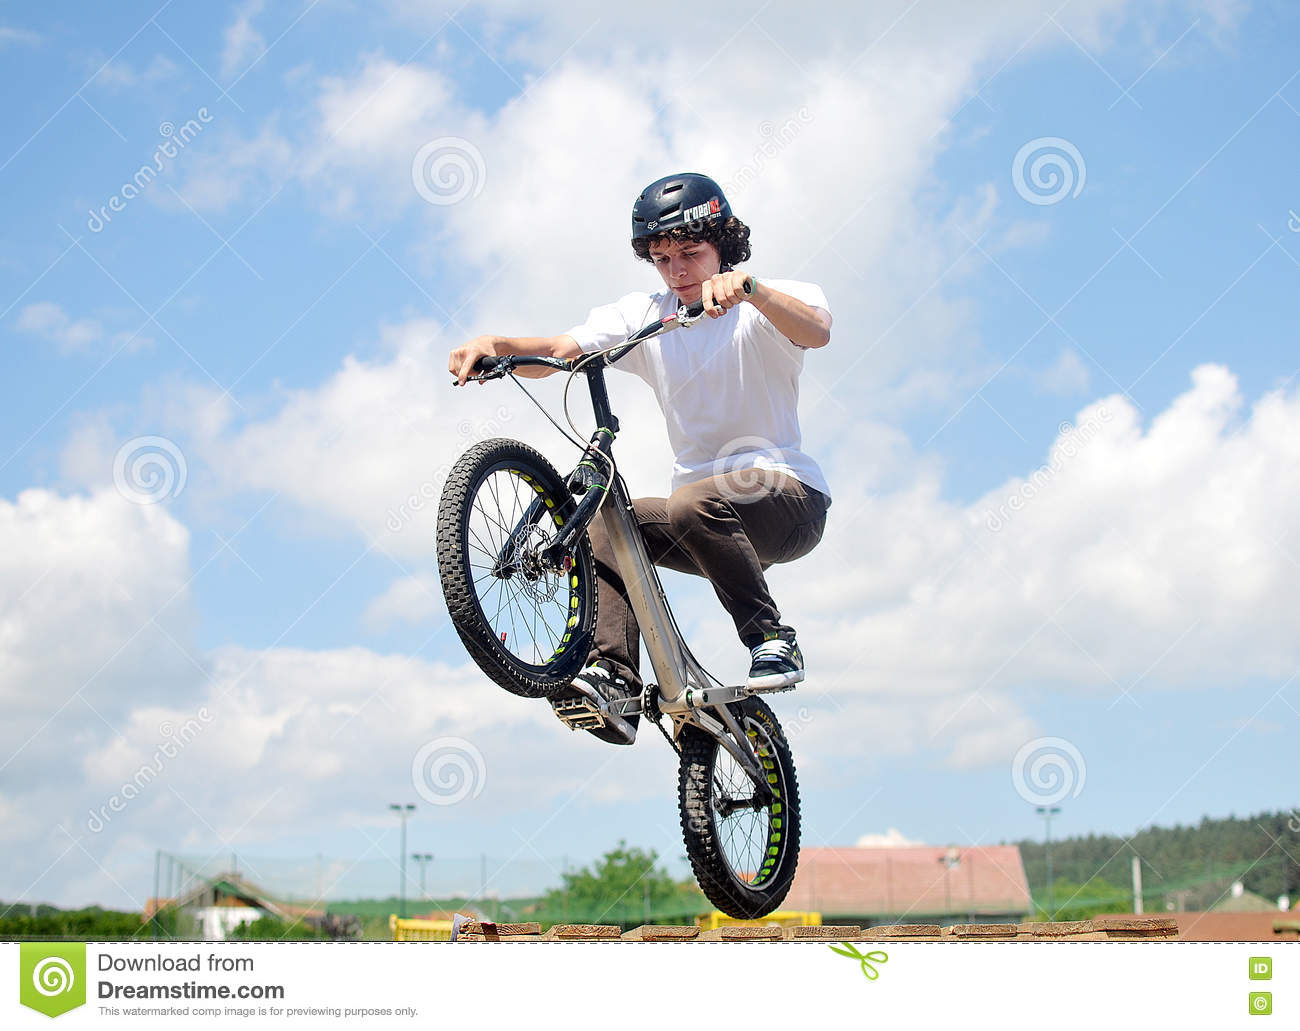 Summer is for extreme sports